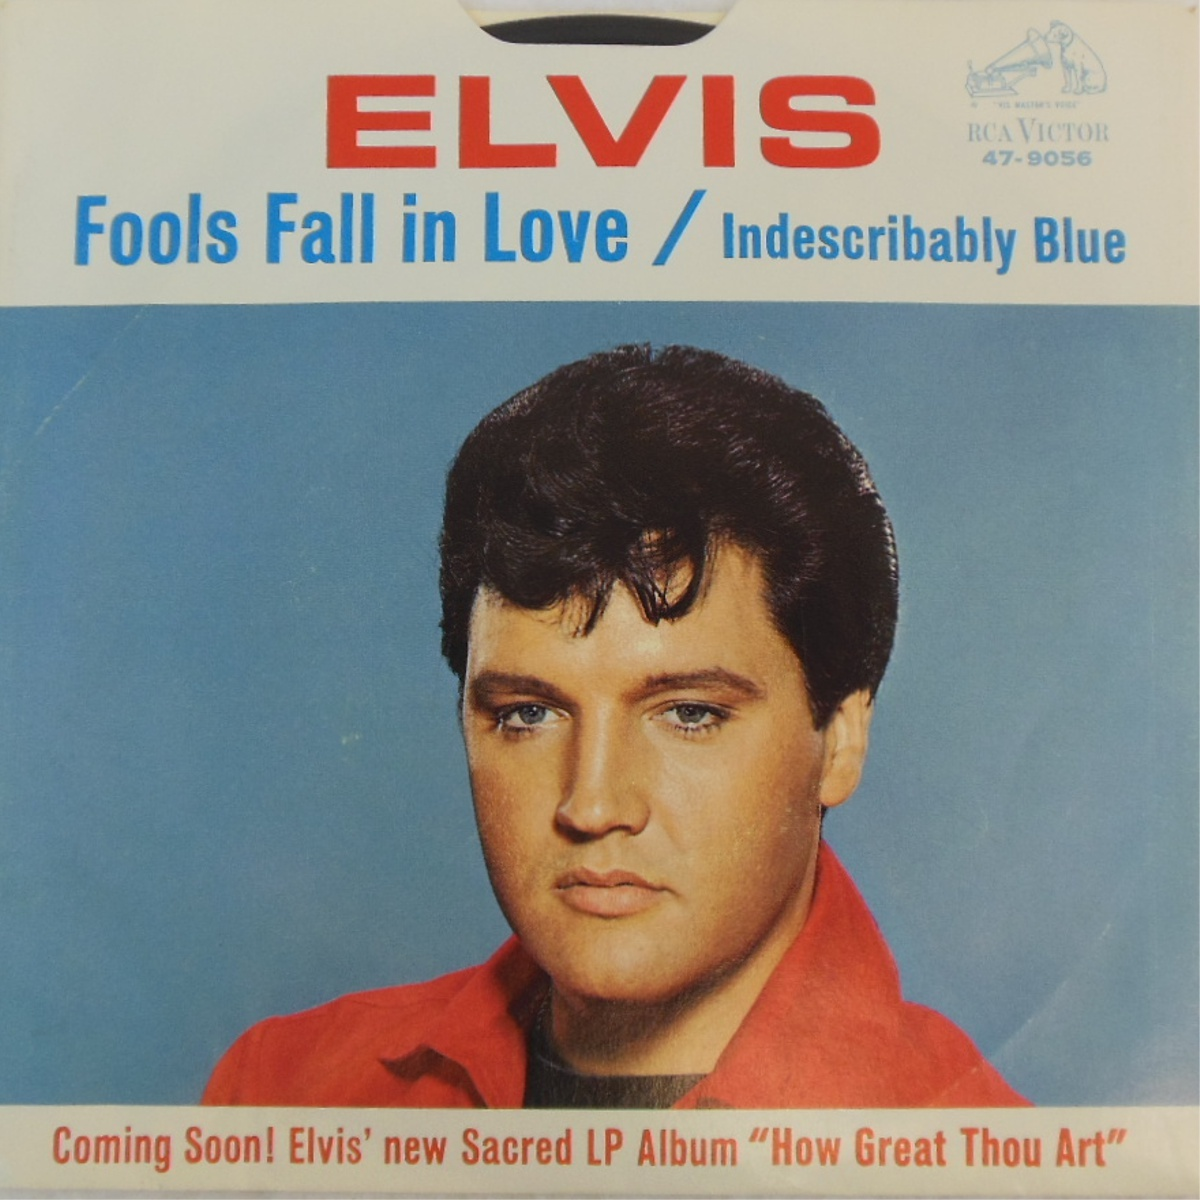 Indescribably Blue / Fools Fall In Love 47-9056ahxcuq